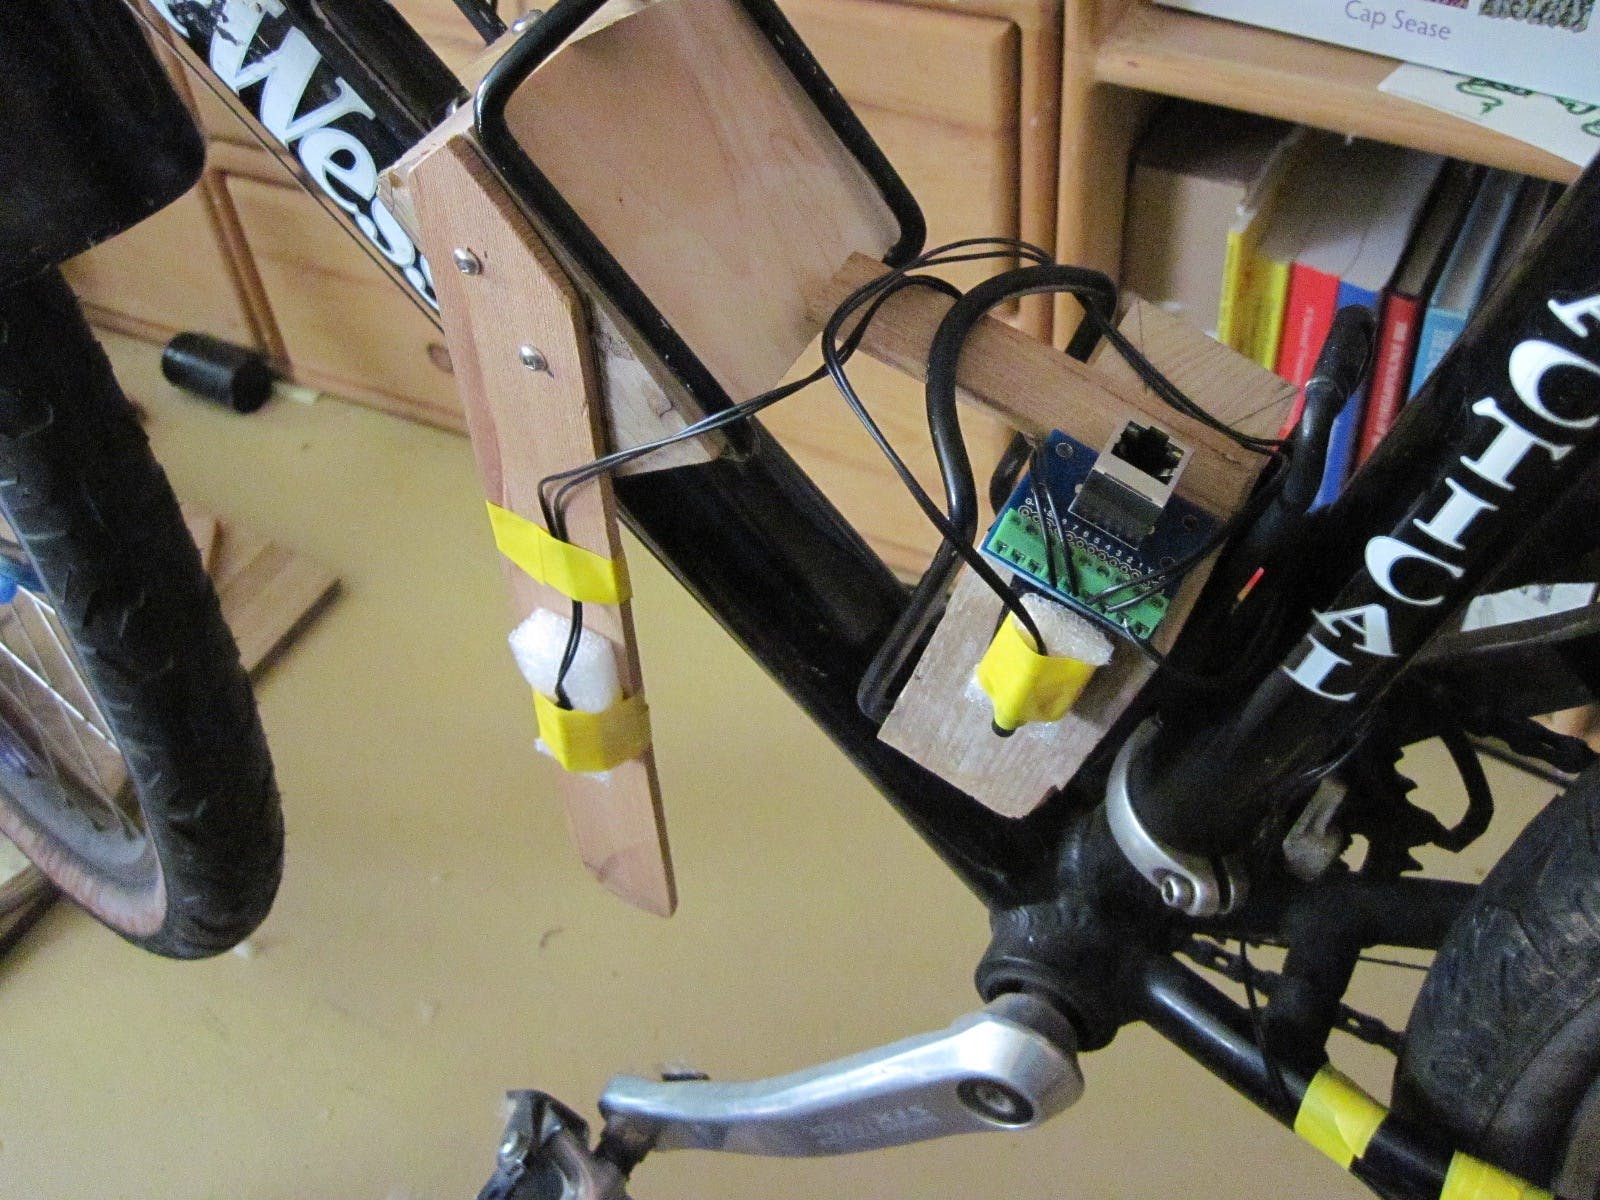 Pedal sensor array:  3 reed switches (yellow tape) capturing speed and direction